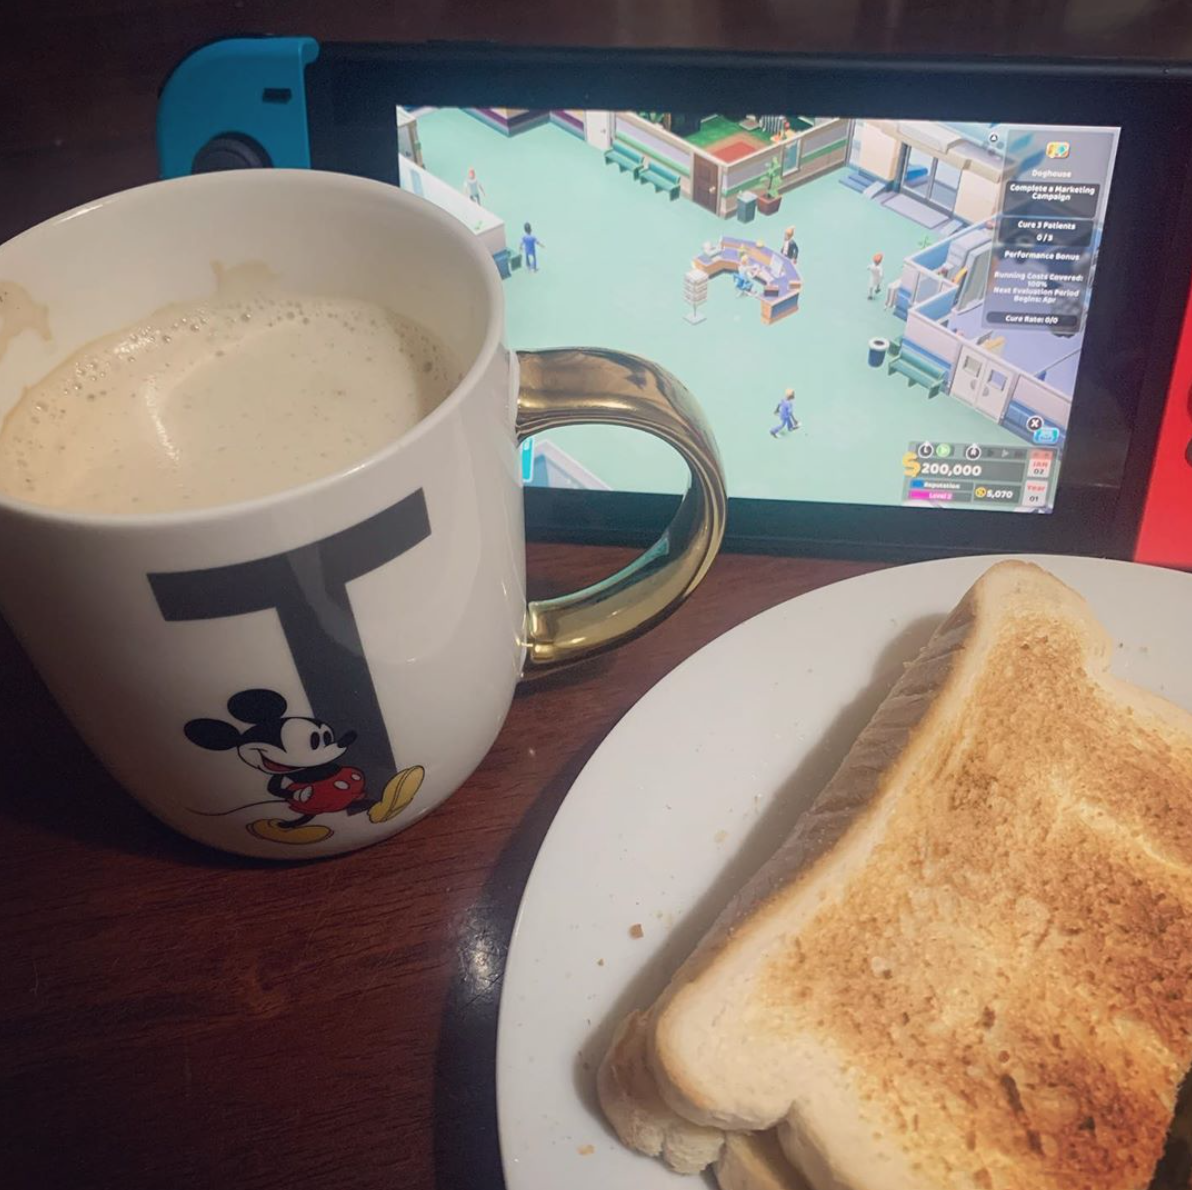 Nintendo Switch with two point hospital on the screen, a cup of coffee at the side and a slice of toast nearby. Is the Nintendo Switch educational?